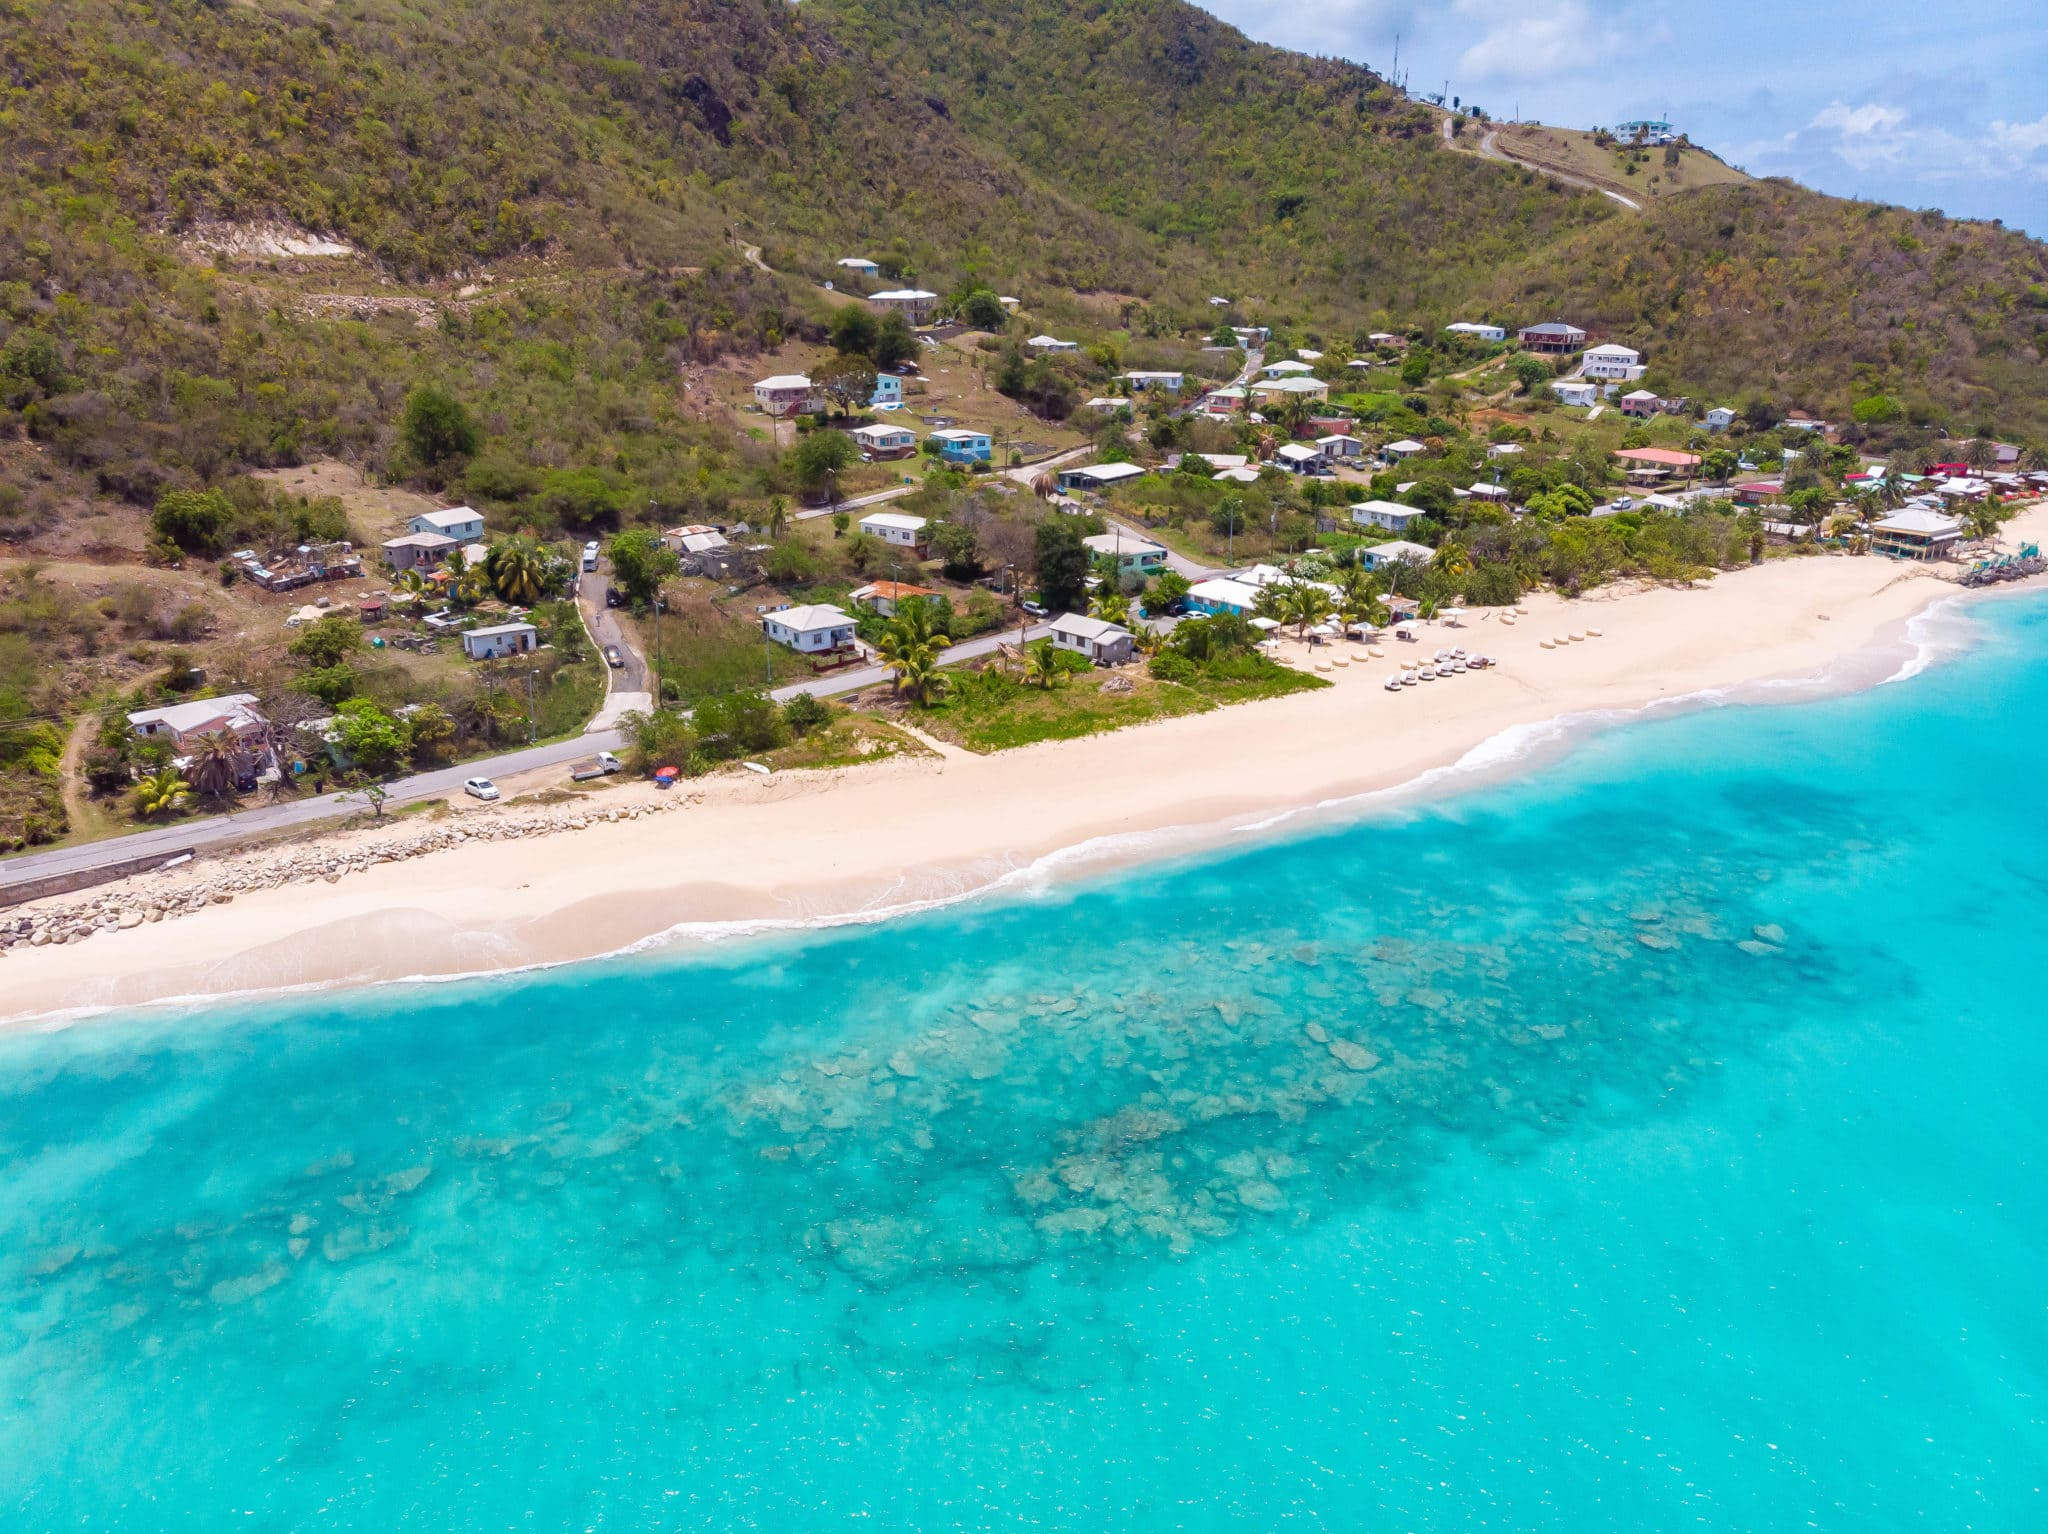 Turners Beach Antigua – Up to Take a Turn?